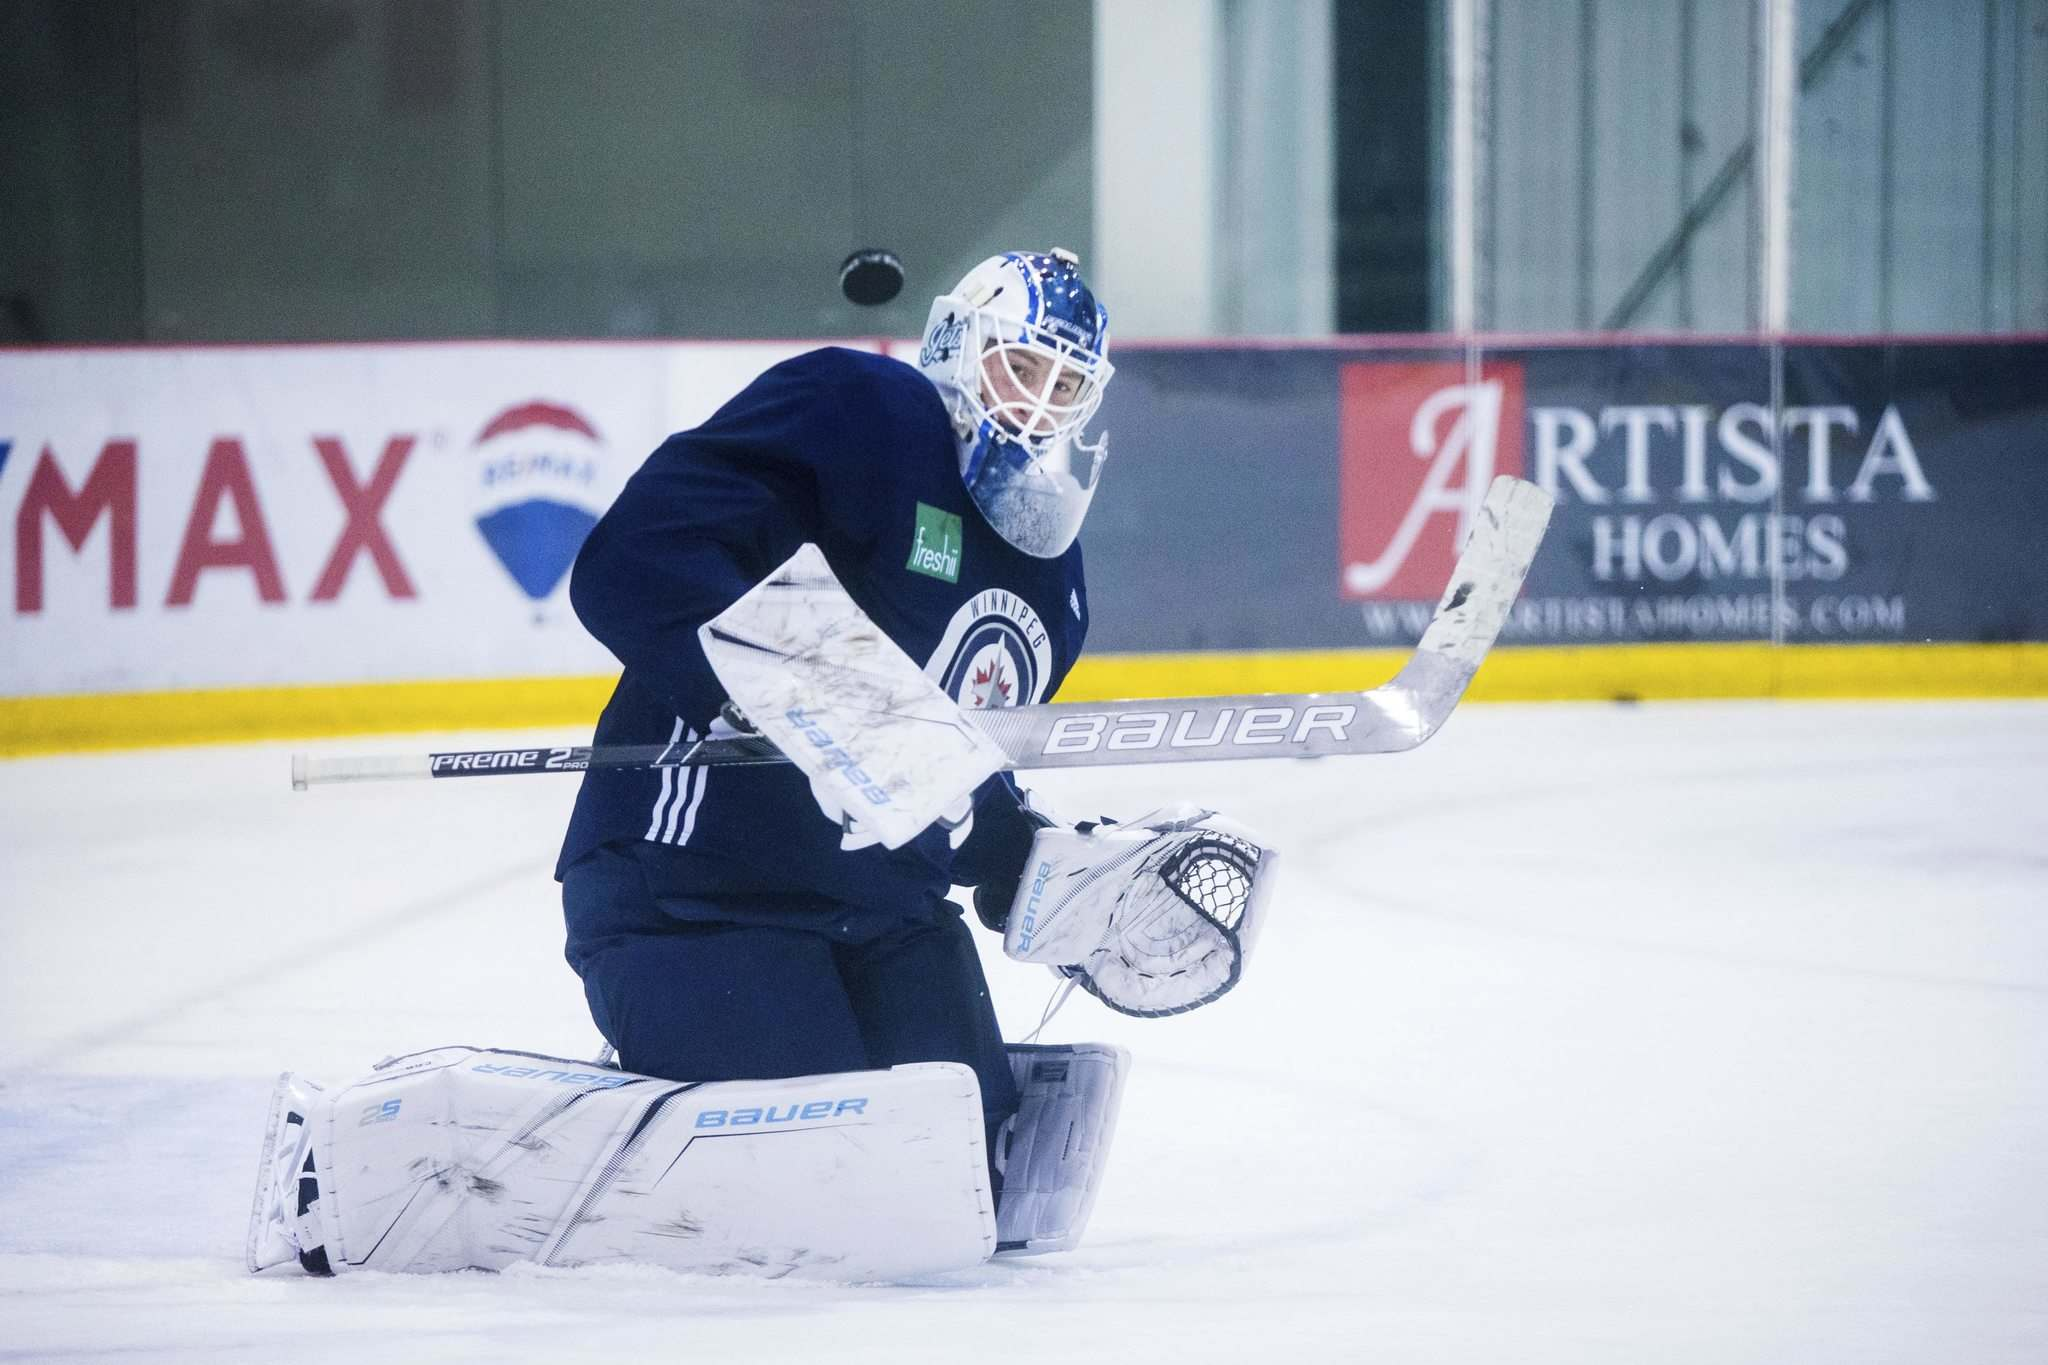 MIKAELA MACKENZIE / WINNIPEG FREE PRESS</p><p>Jets goalie Laurent Brossoit practices at Bell MTS Iceplex on Wednesday.</p>